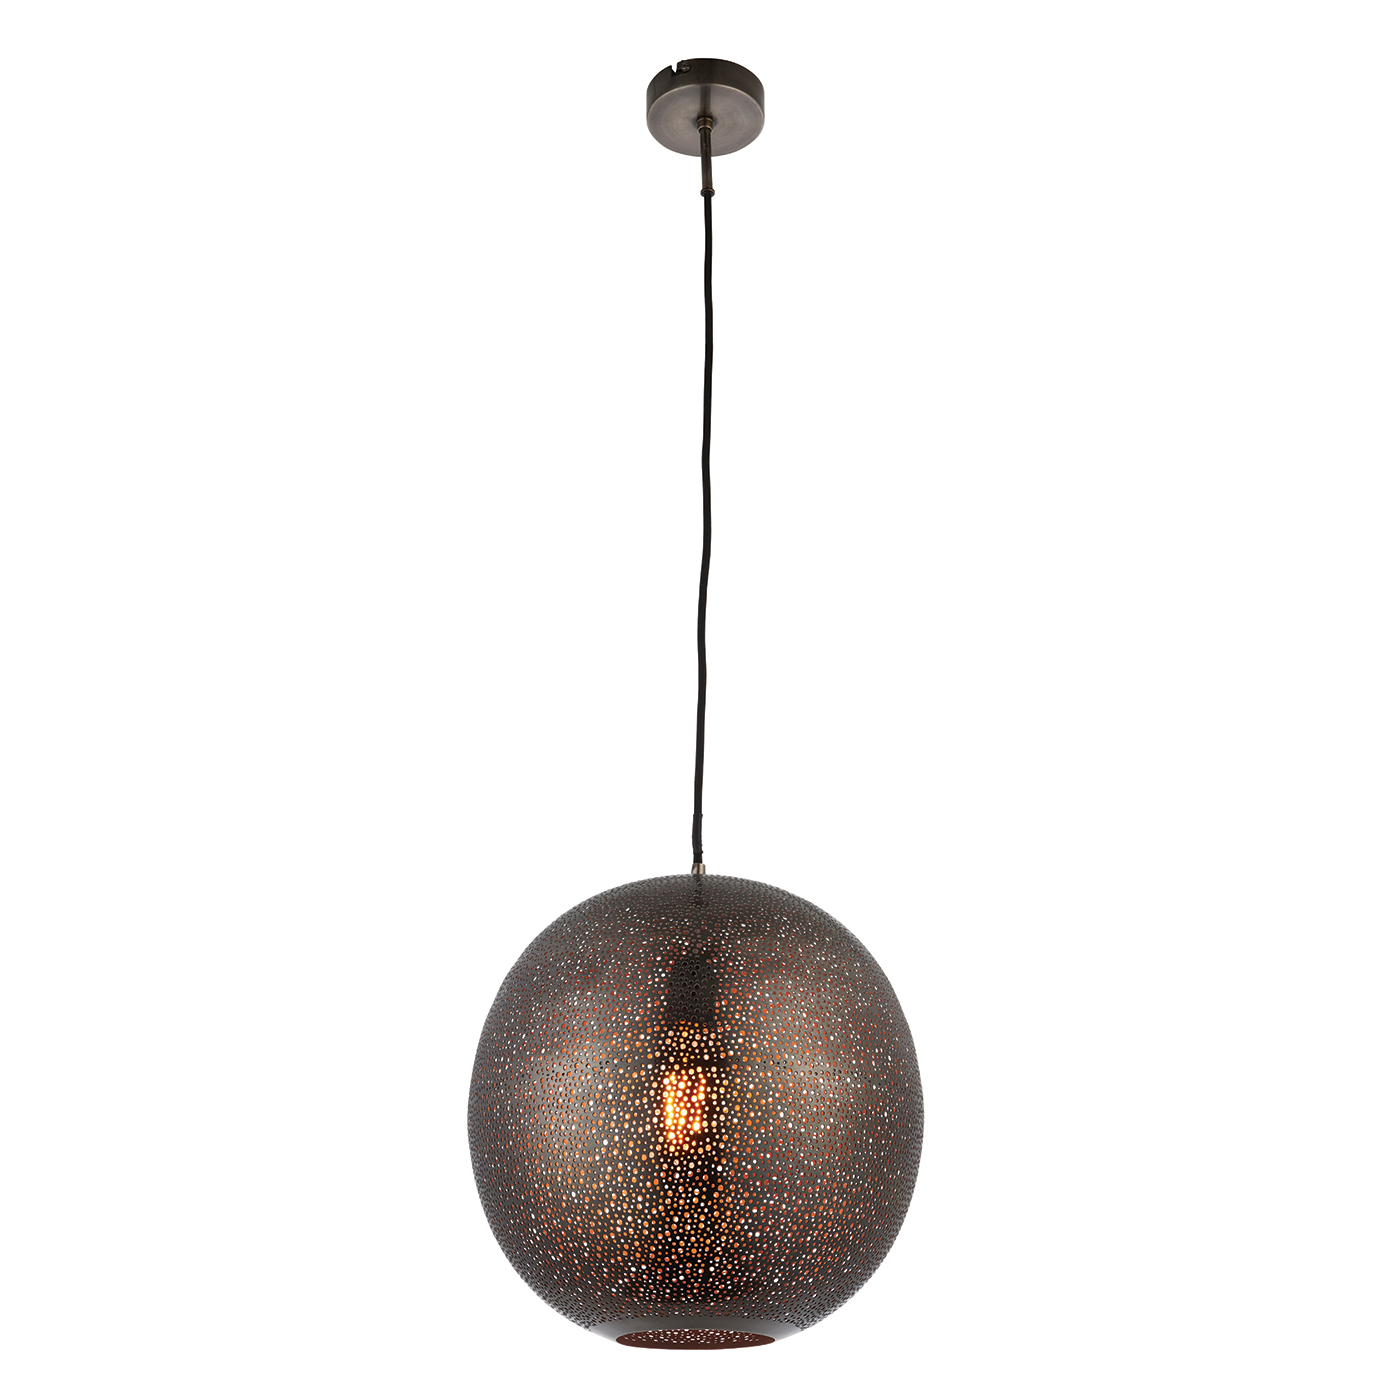 Endon Abu pendant 1x 40W Matt antique pewter effect plate